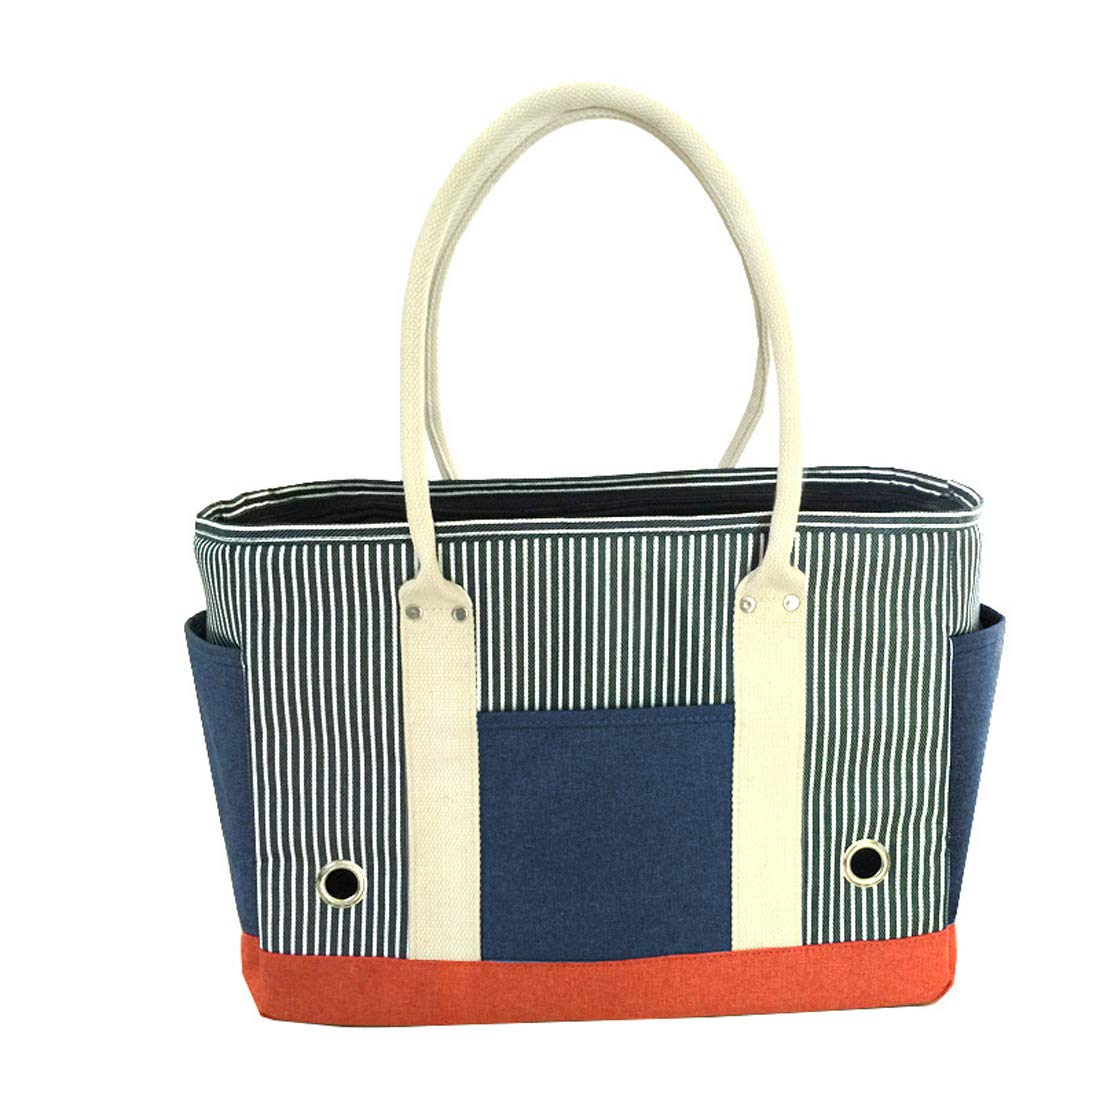 bluee Globalwells Fashion Pet Dog Carriers Cat Travel Portable Carrying Tote Handbag for Outdoor Walking Hiking